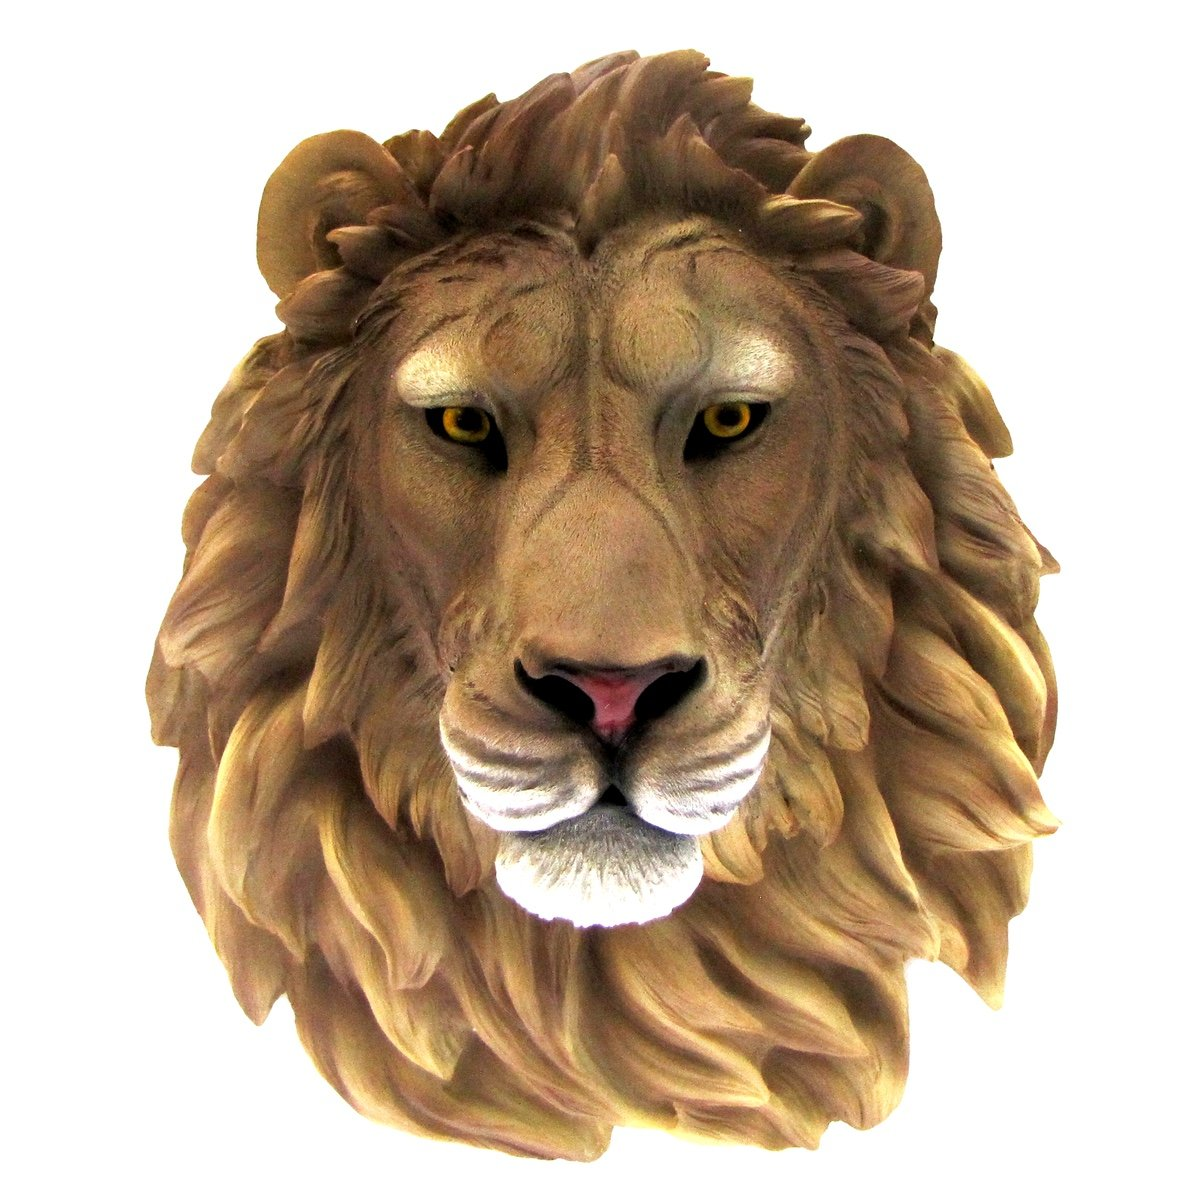 Life Size 3D Wall Mount African Lion Resin Head Kids Childrens Room Jungle Decor